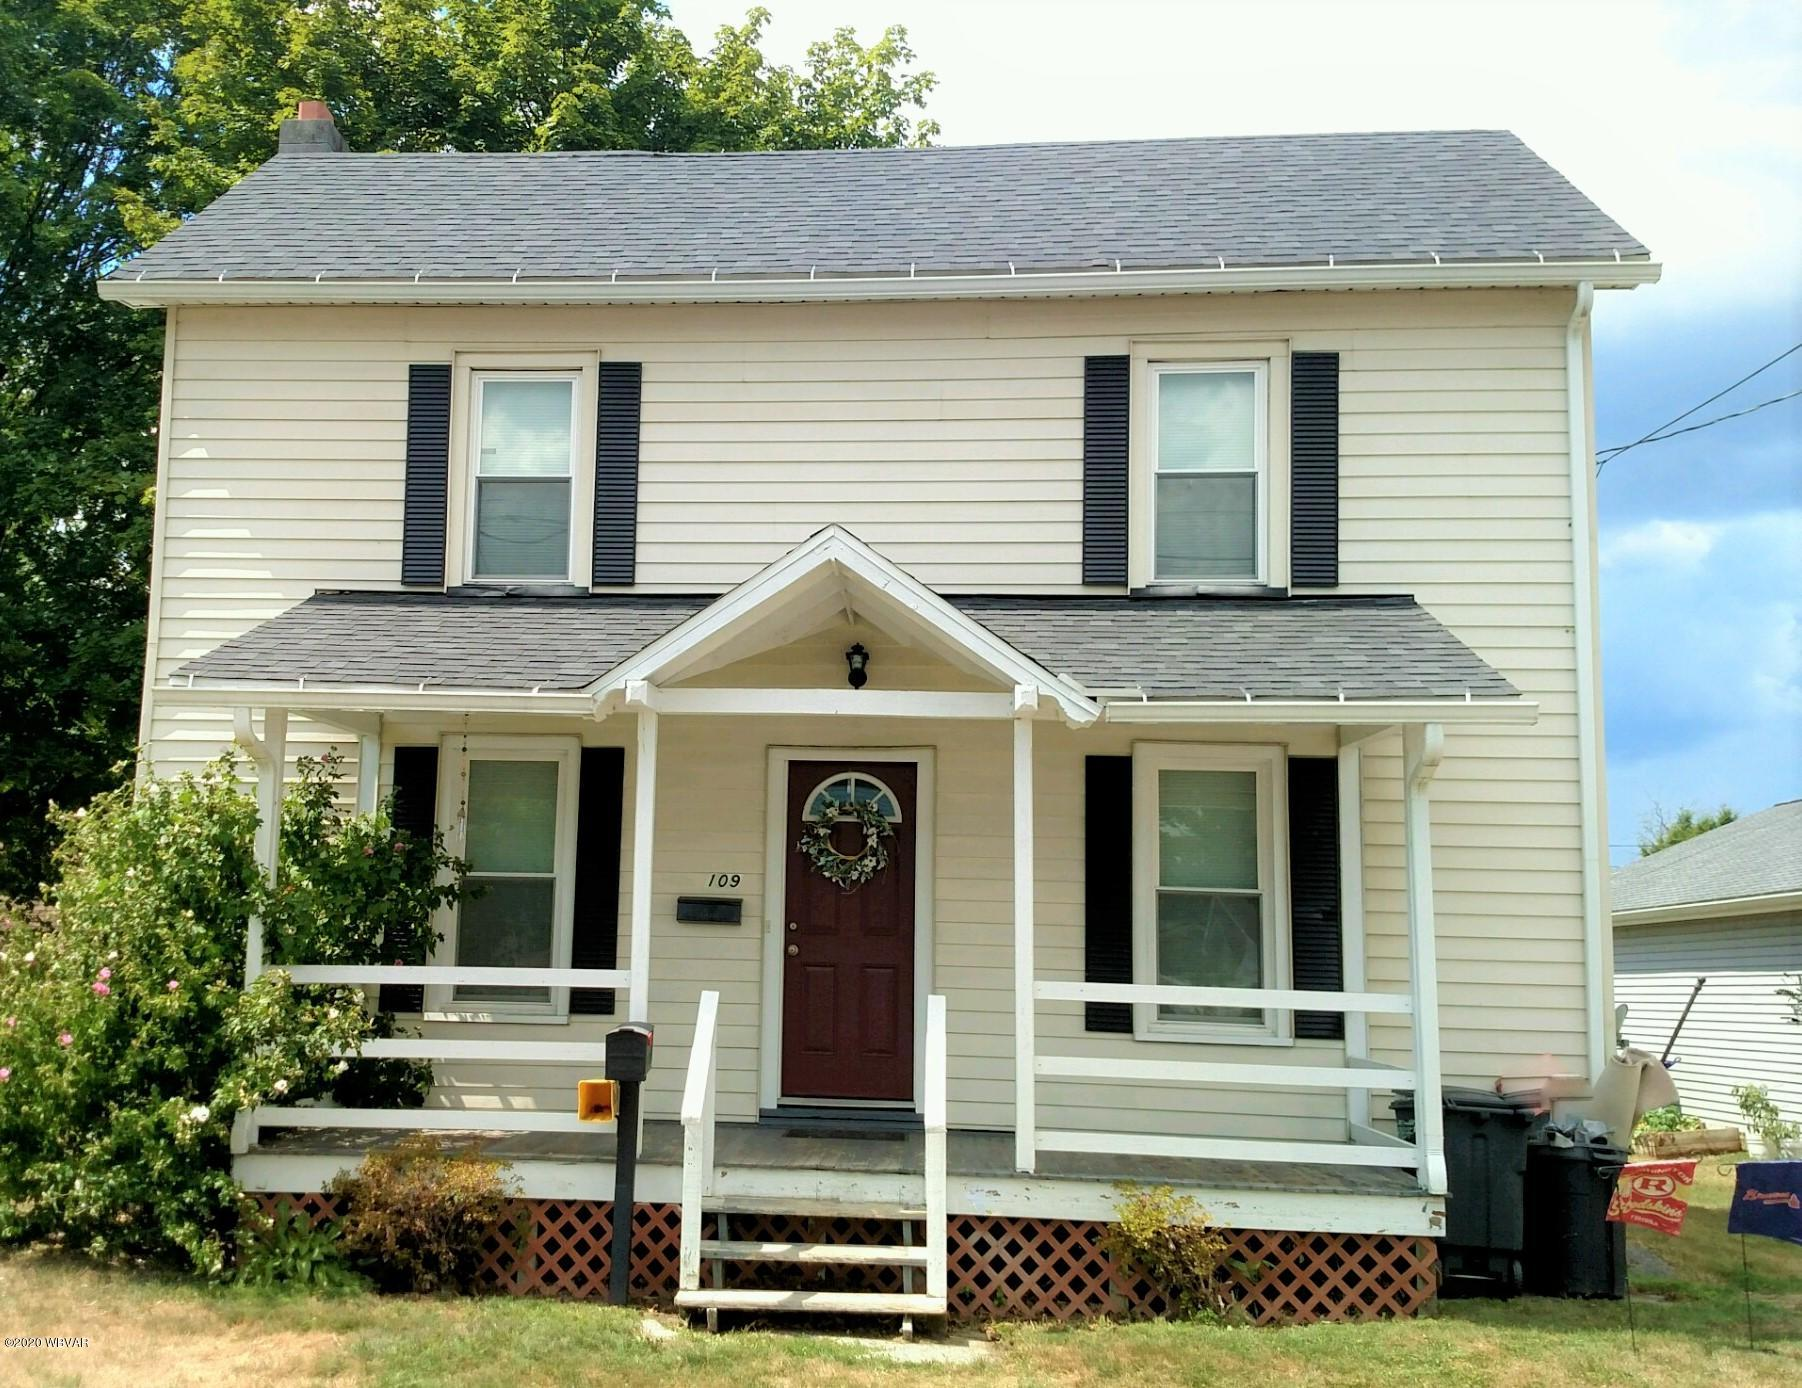 109 PALMER AVENUE, Mill Hall, PA 17751, 3 Bedrooms Bedrooms, ,1.5 BathroomsBathrooms,Residential,For sale,PALMER,WB-90932